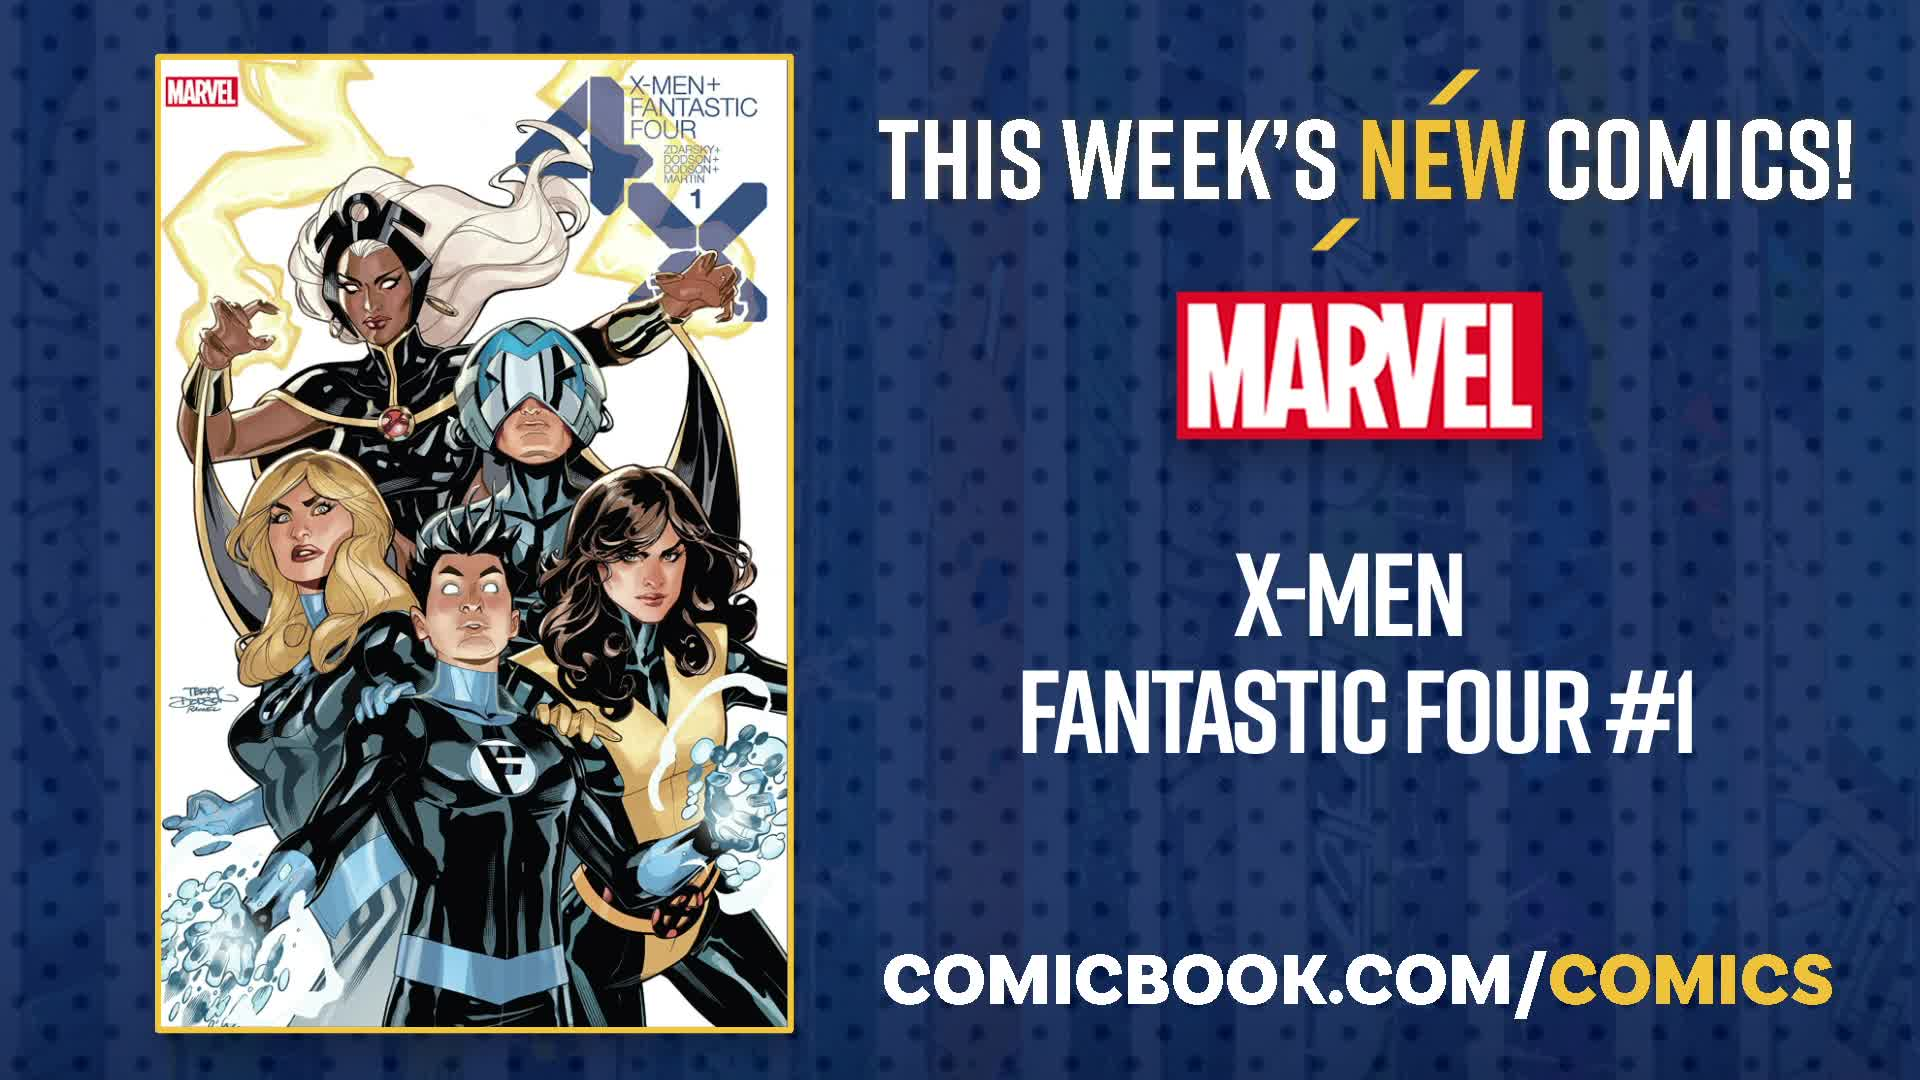 NEW Marvel, DC and Image Comics Out This Week - February 5, 2020 screen capture